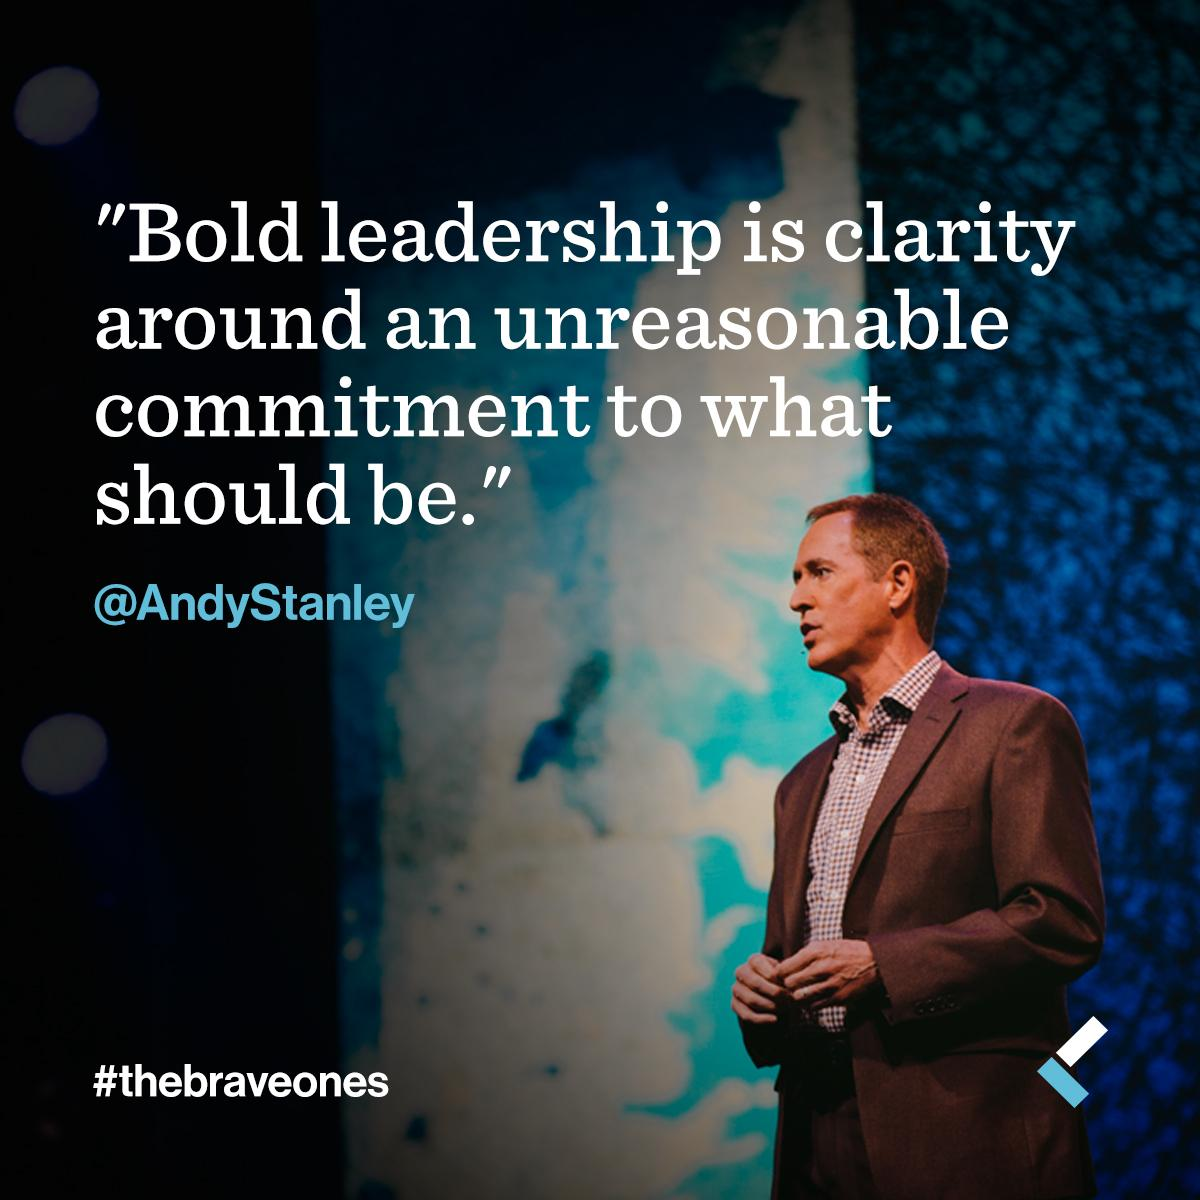 Bold leadership is clarity around an unreasonable commitment to what should be -@AndyStanley #thebraveones http://t.co/0UyMnPyfJI